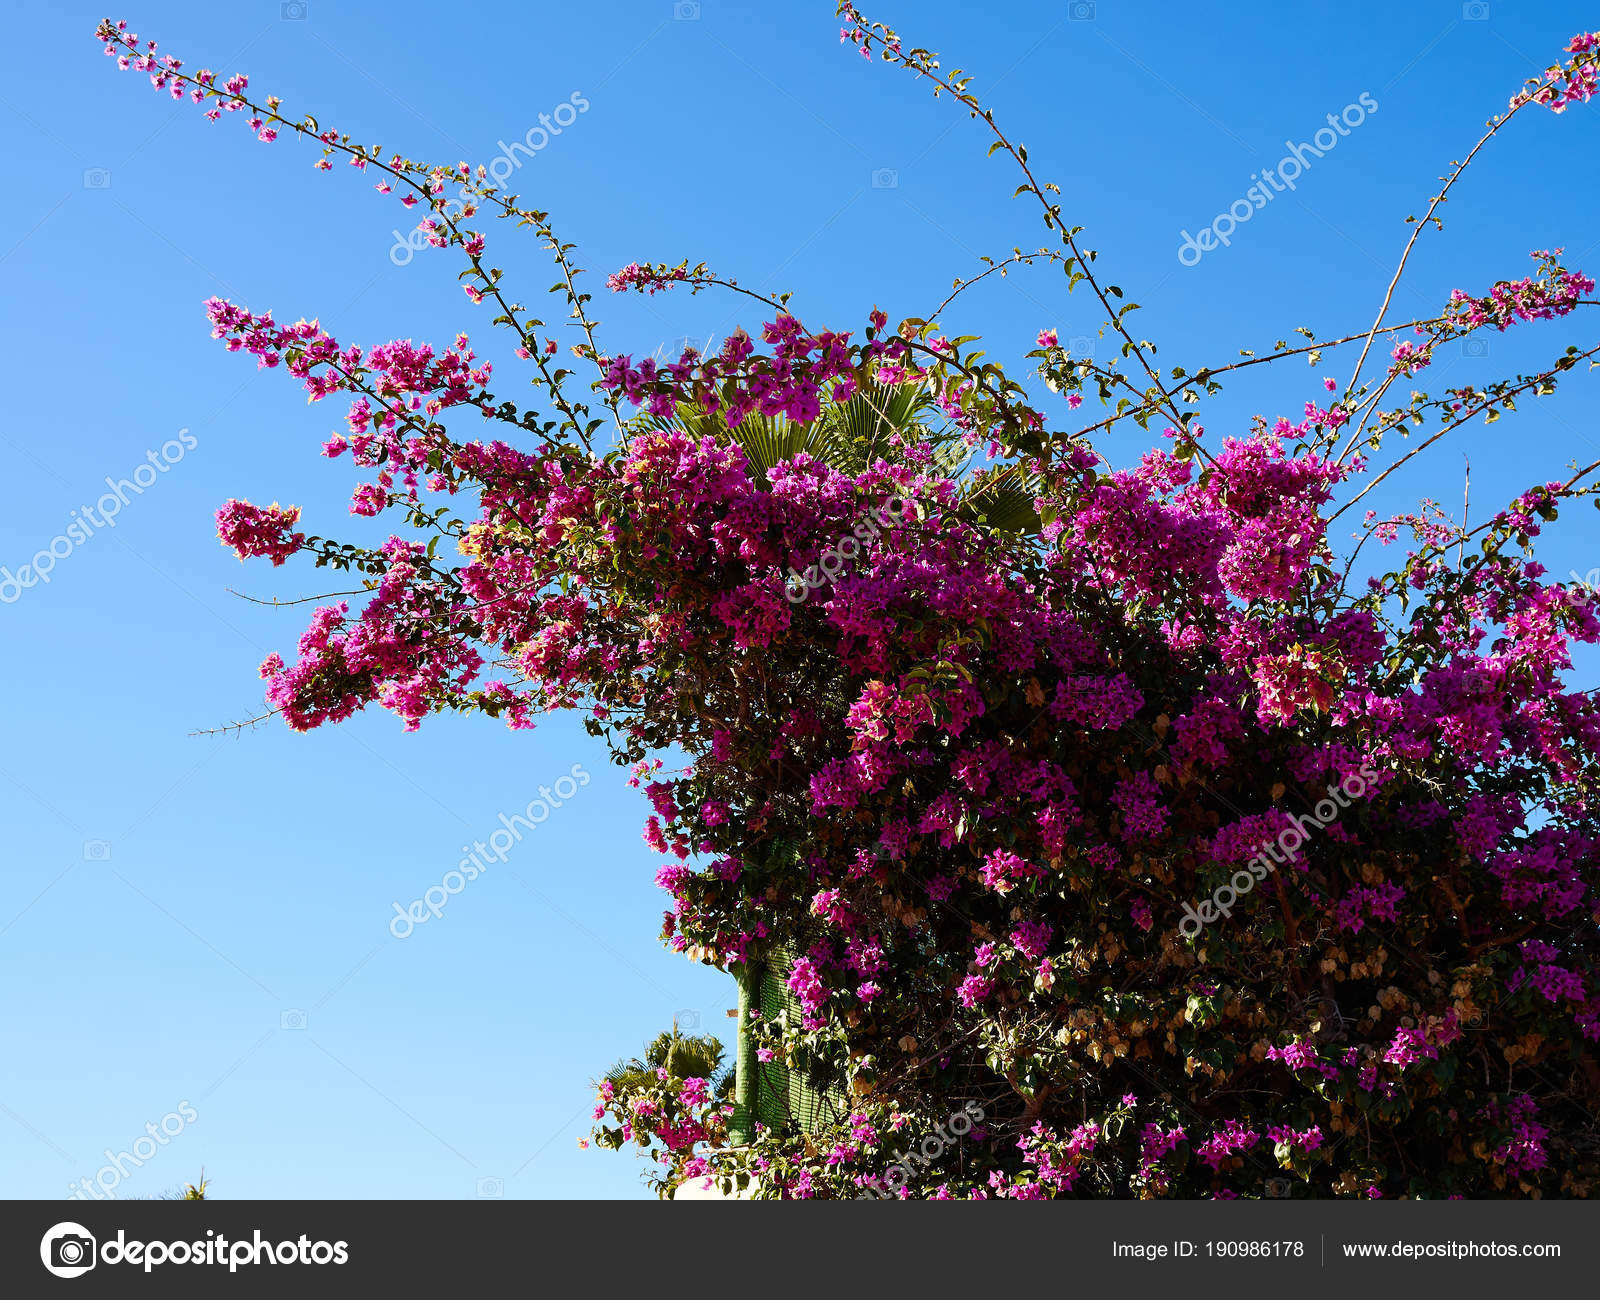 Blooming bougainvillea paper flower stock photo ronyzmbow 190986178 blooming bougainvillea paper flower with clear blue summer sky background photo by ronyzmbow mightylinksfo